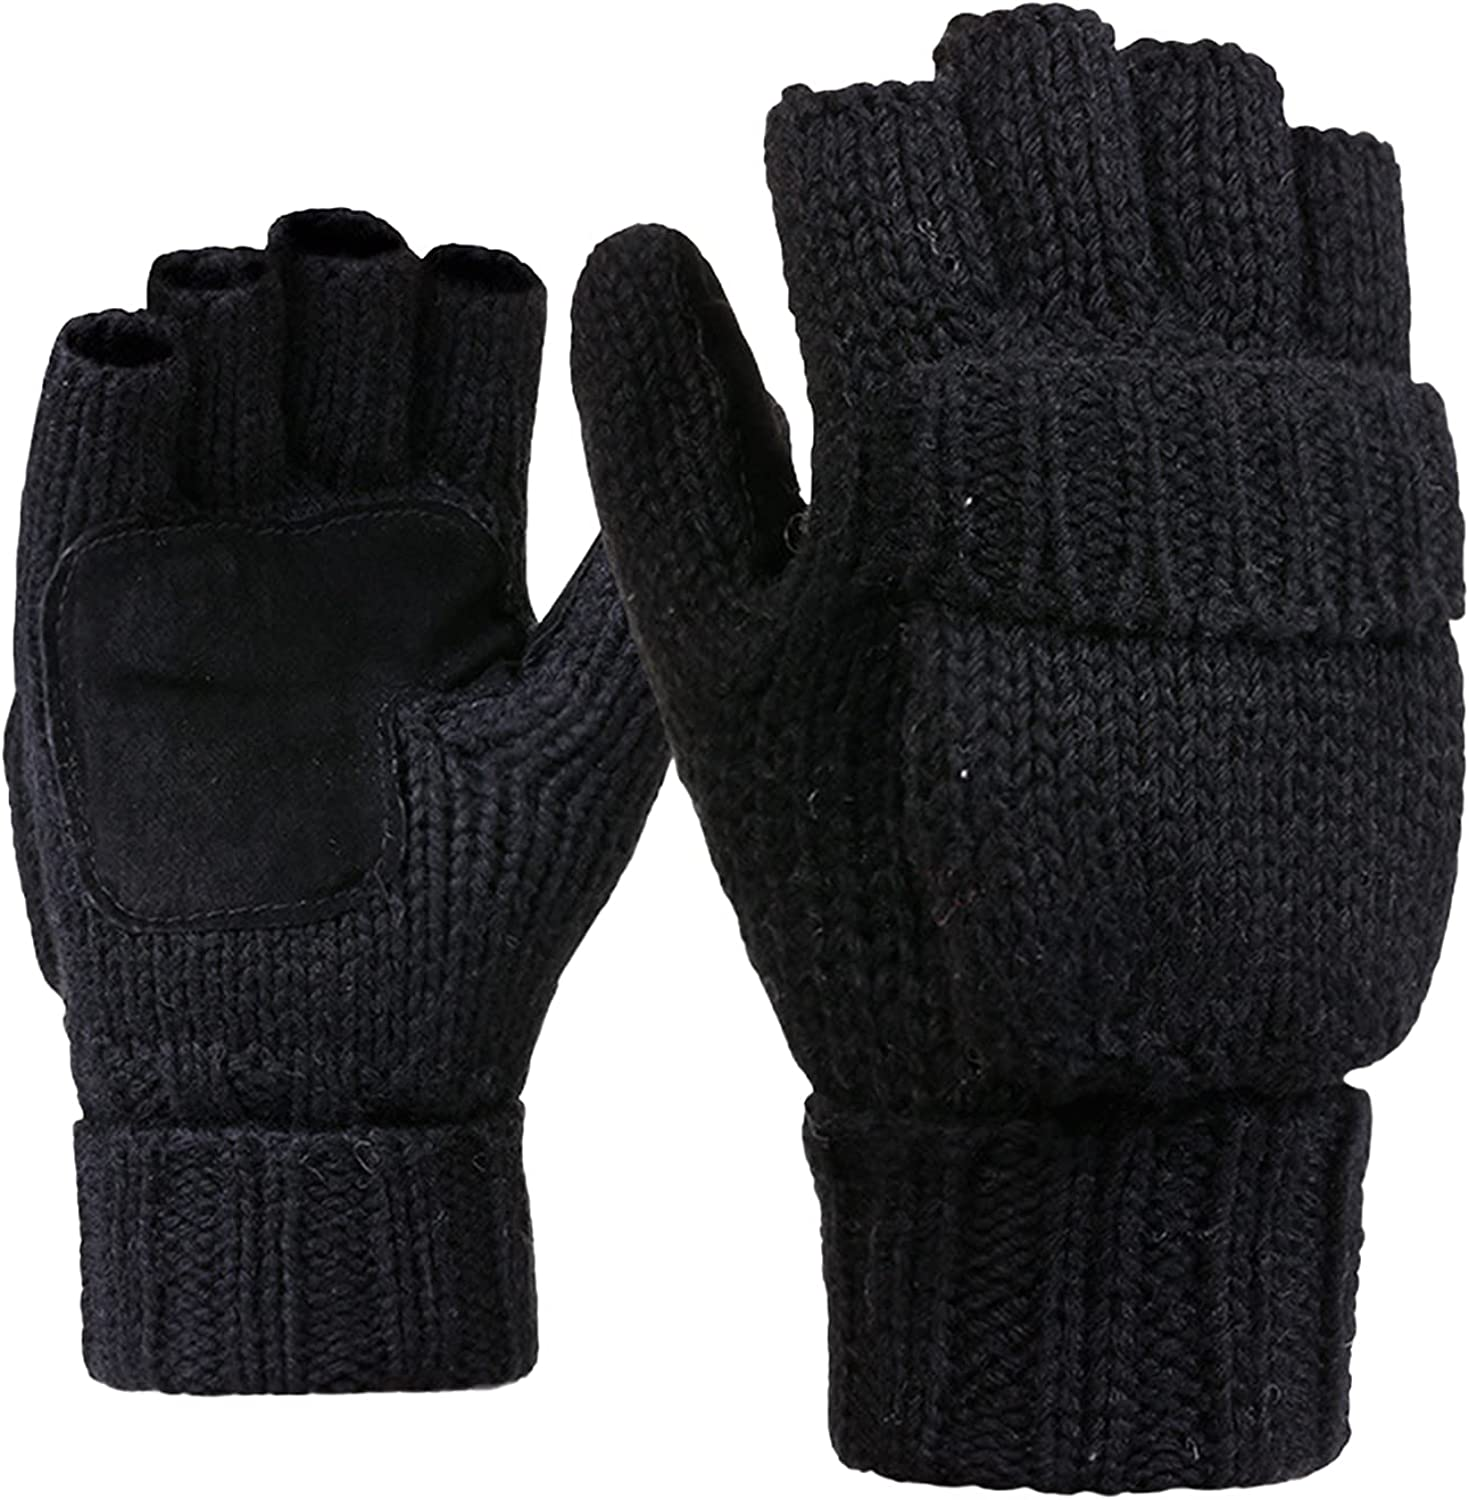 Petyoung Winter Knitted Fingerless Gloves, Wool Mittens with Thick Fleece Warm Glove for Women and Men